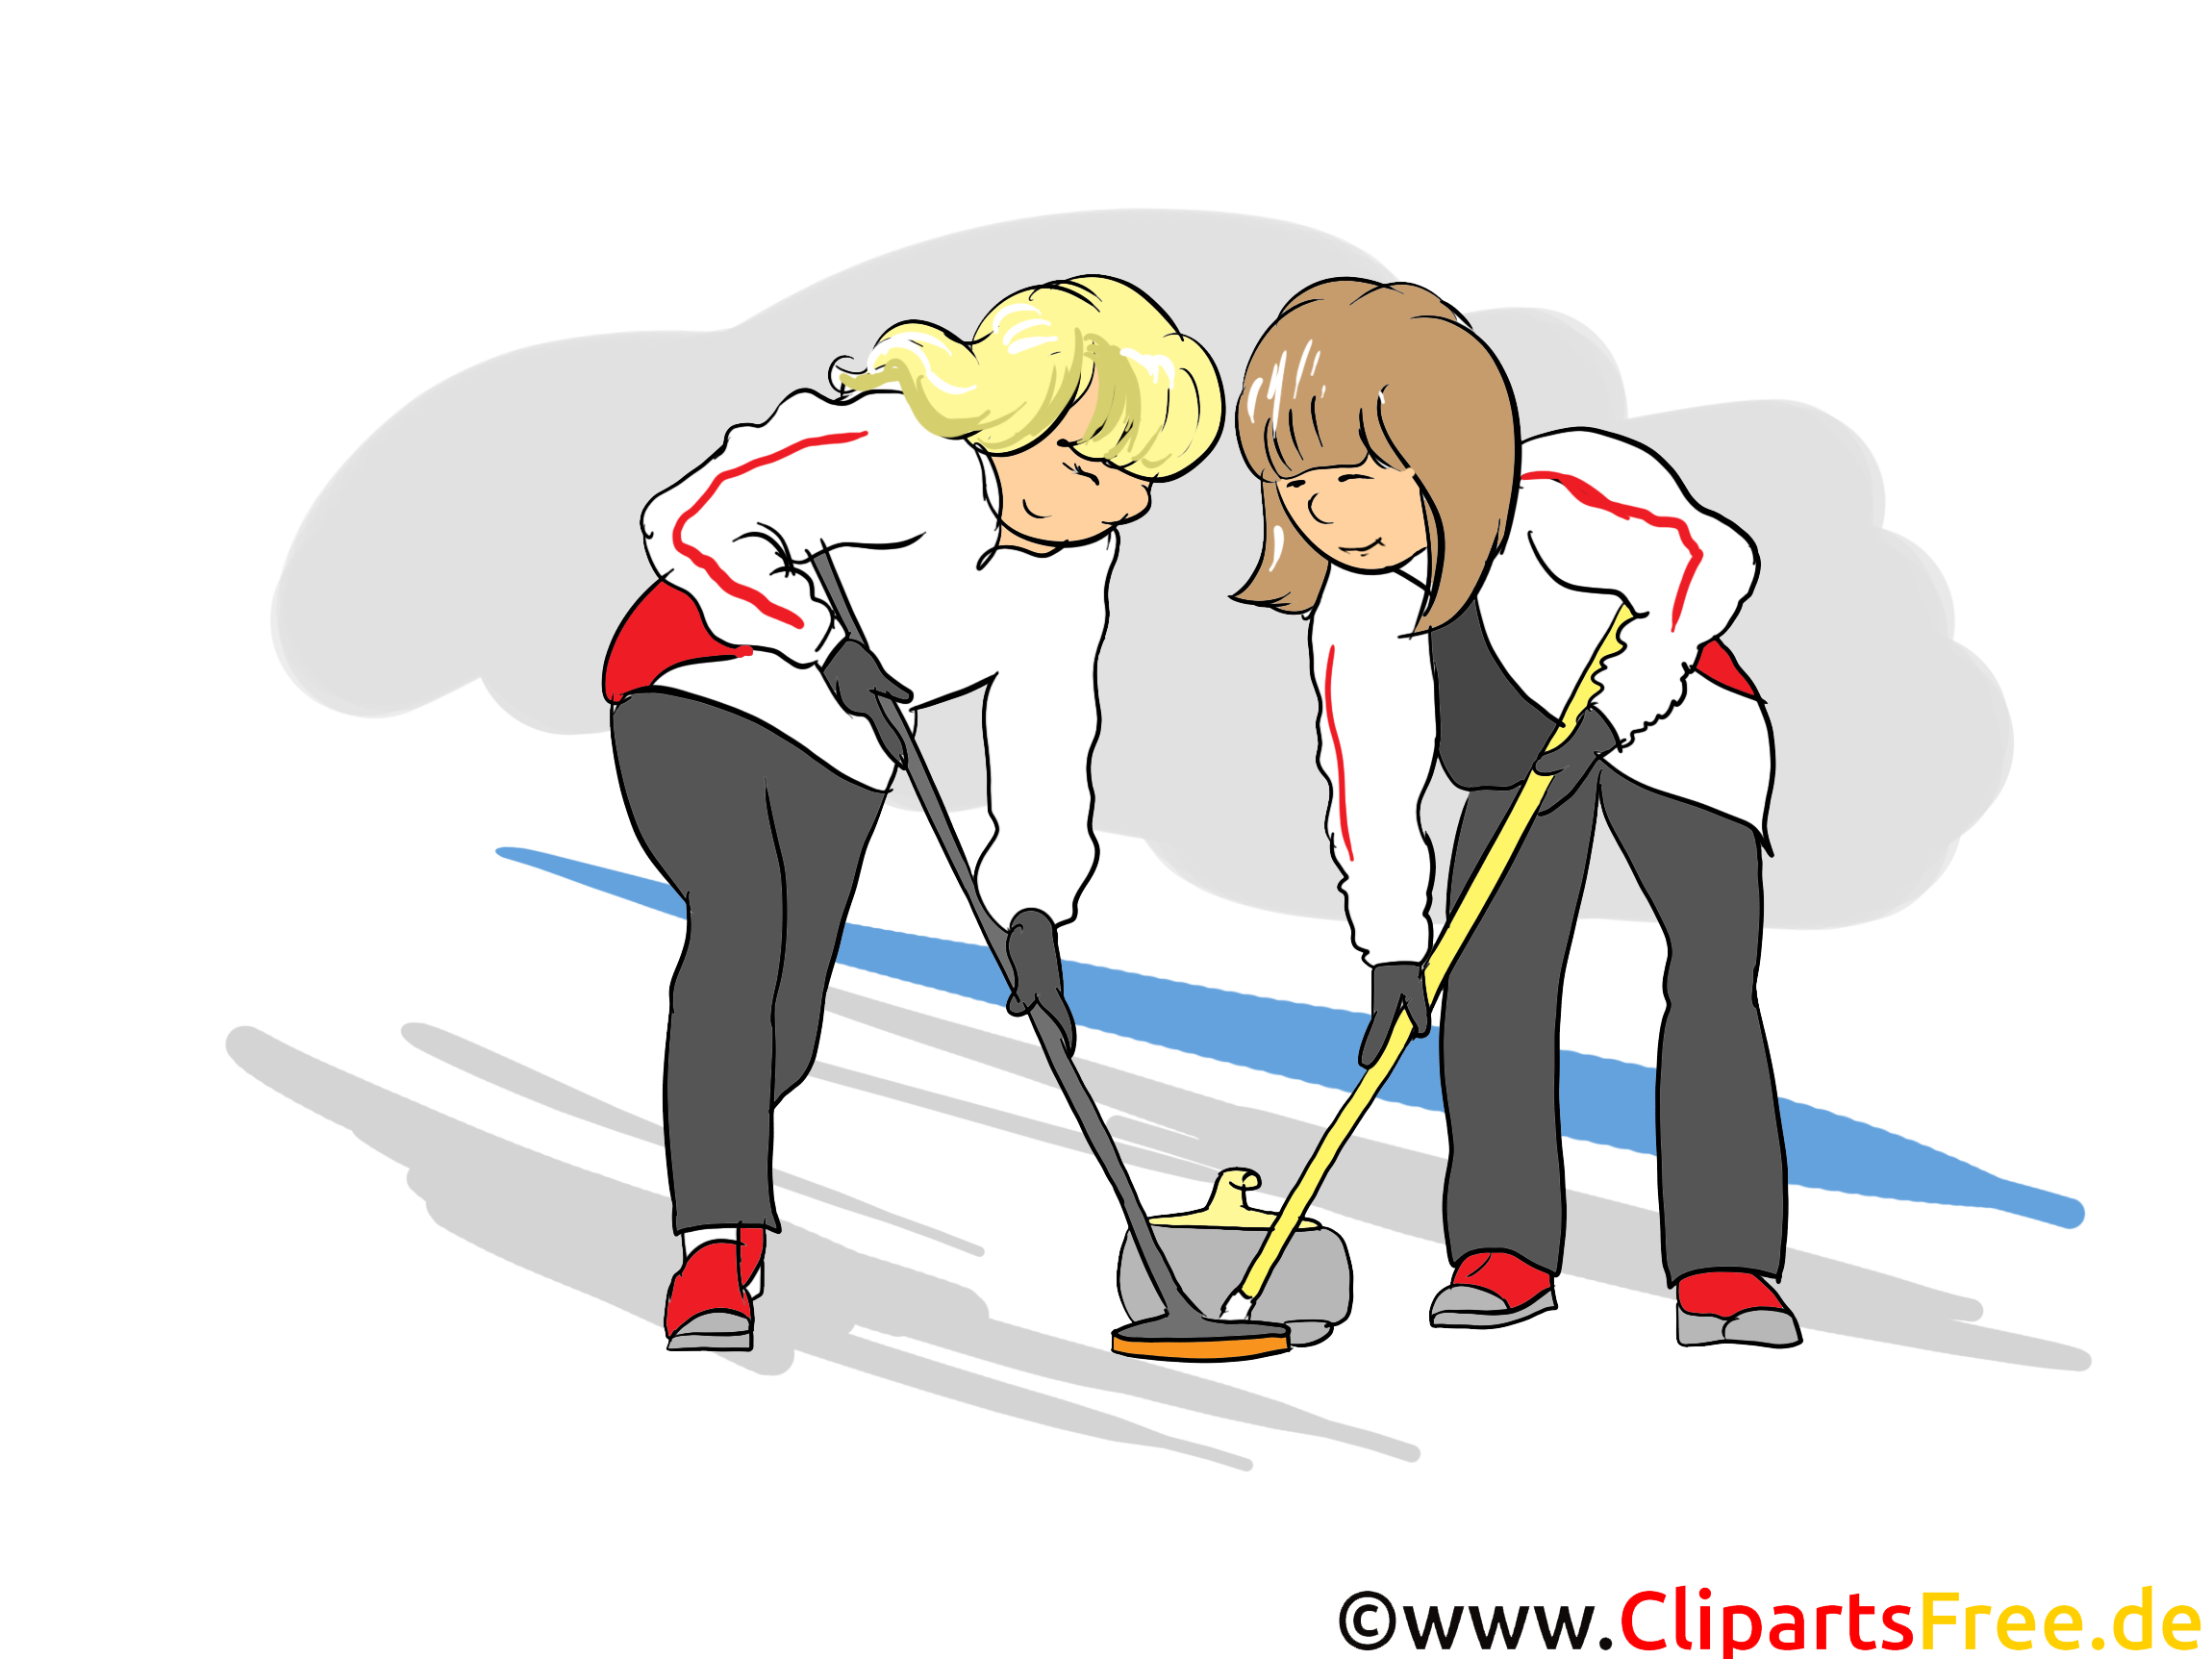 Curling Clipart, Bild, Cartoon, Comic, Illustration